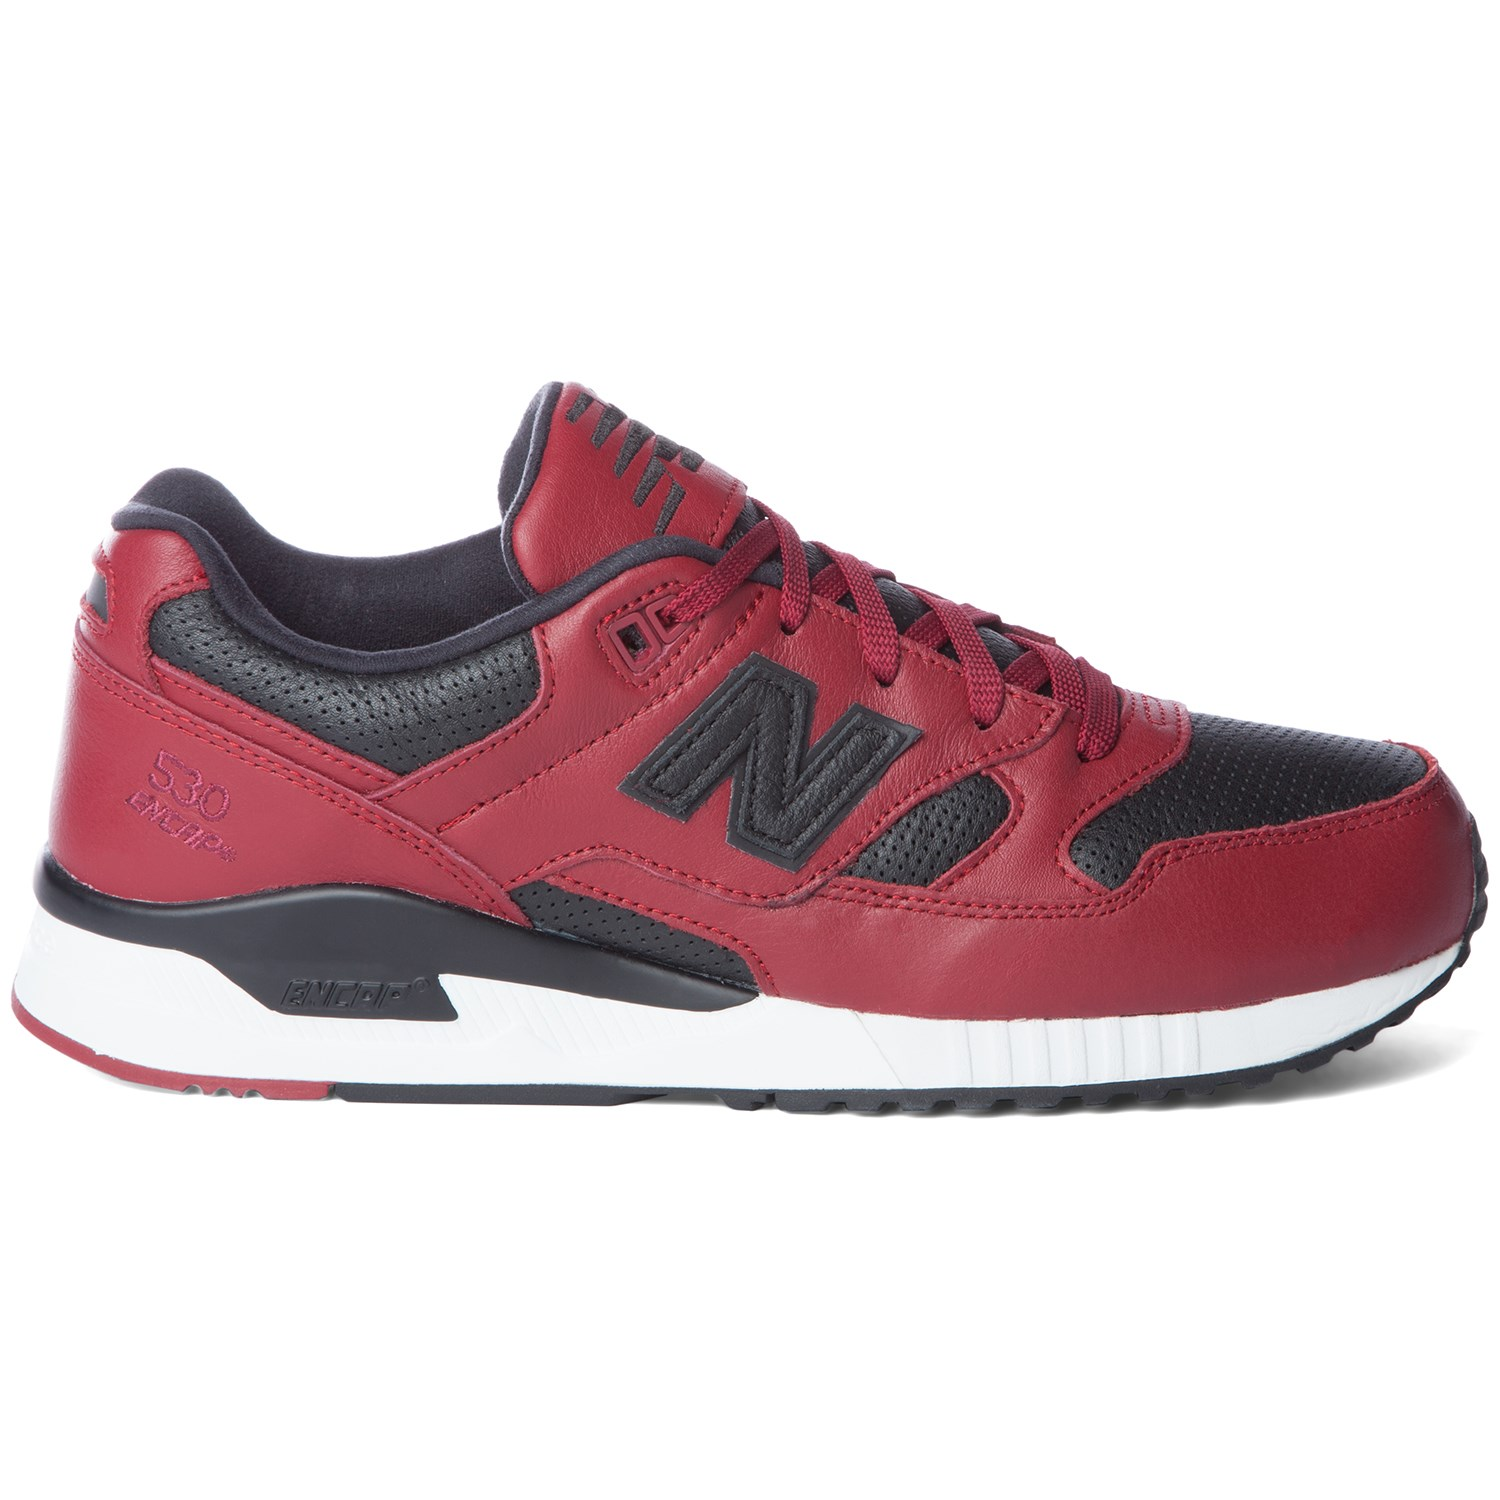 f56d3021619 New Balance 530 Lux Leather Shoes | evo